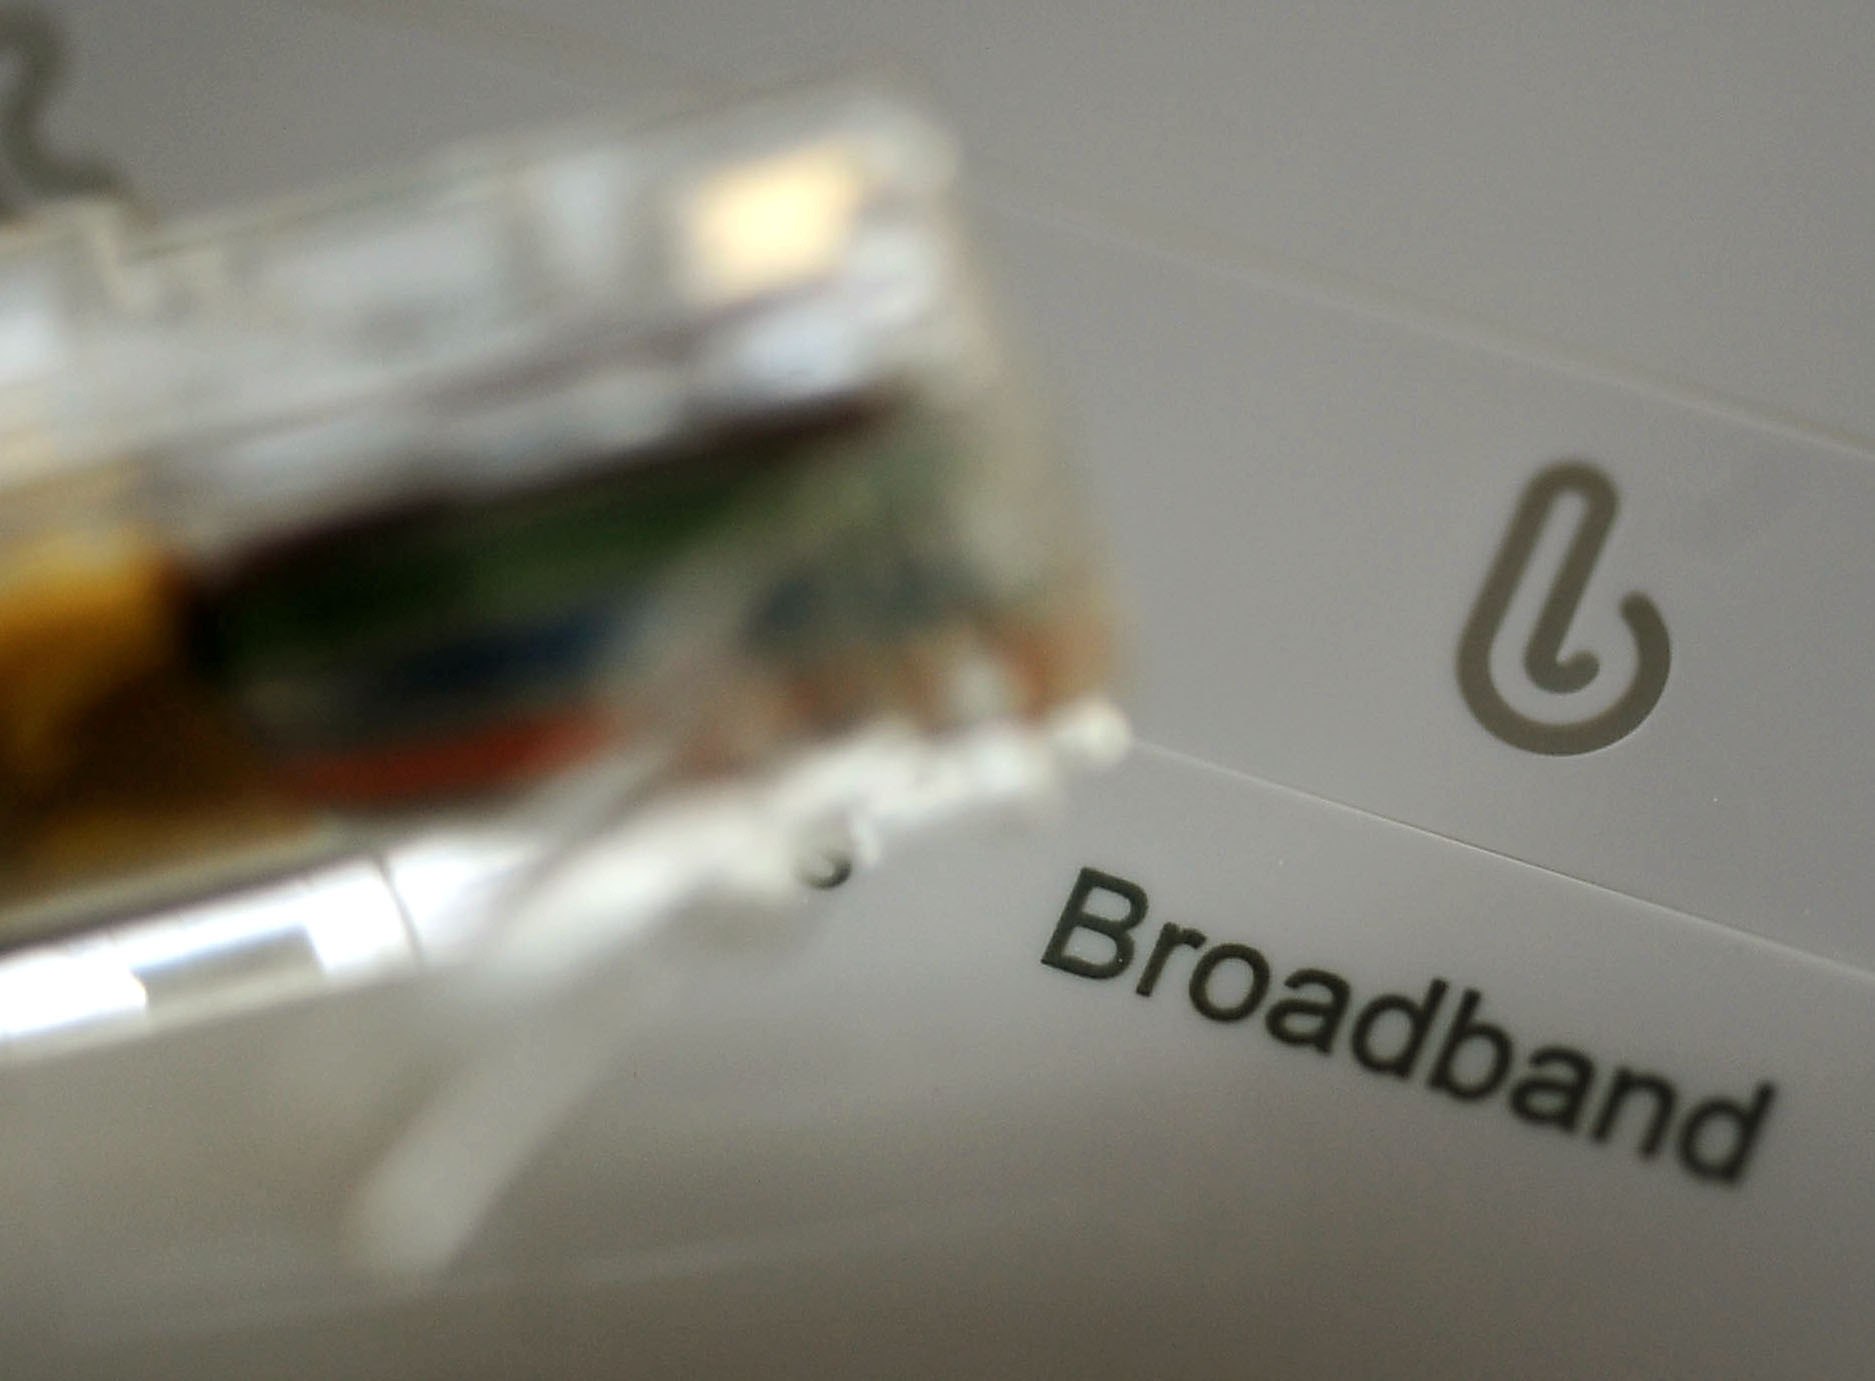 A broadband router and cable. Picture: PA